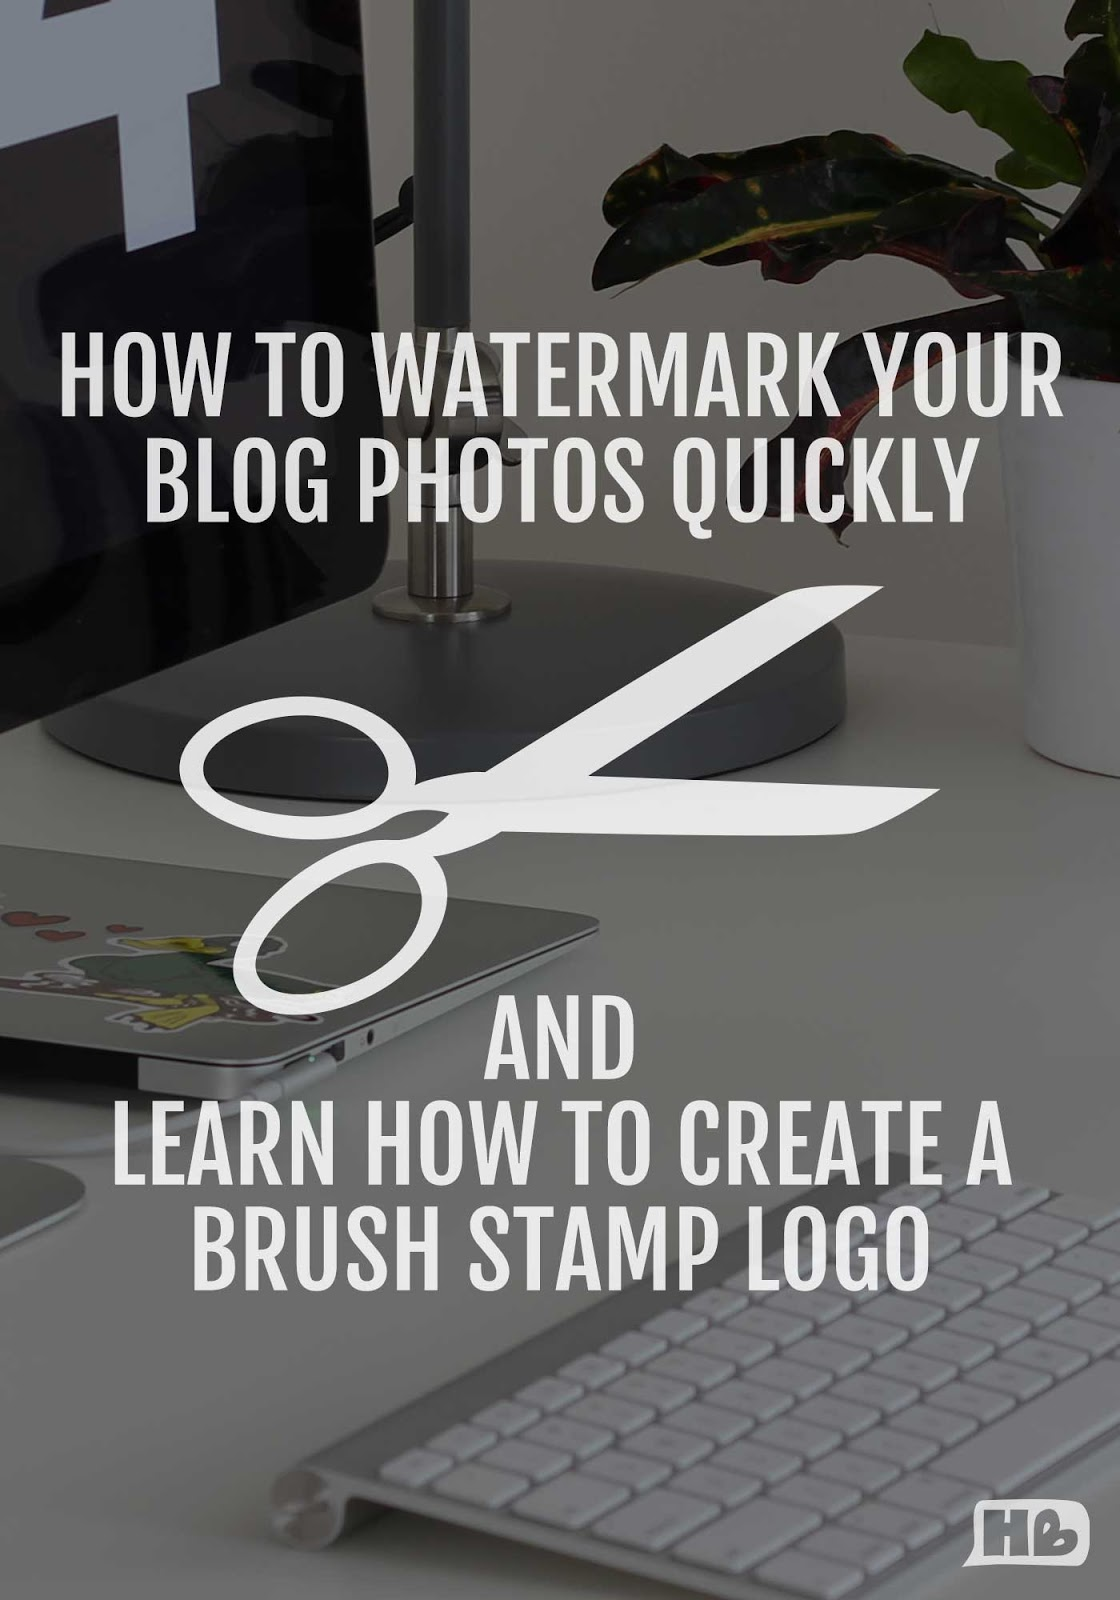 How to watermark your blog photos quickly, plus a photoshop tutorial video